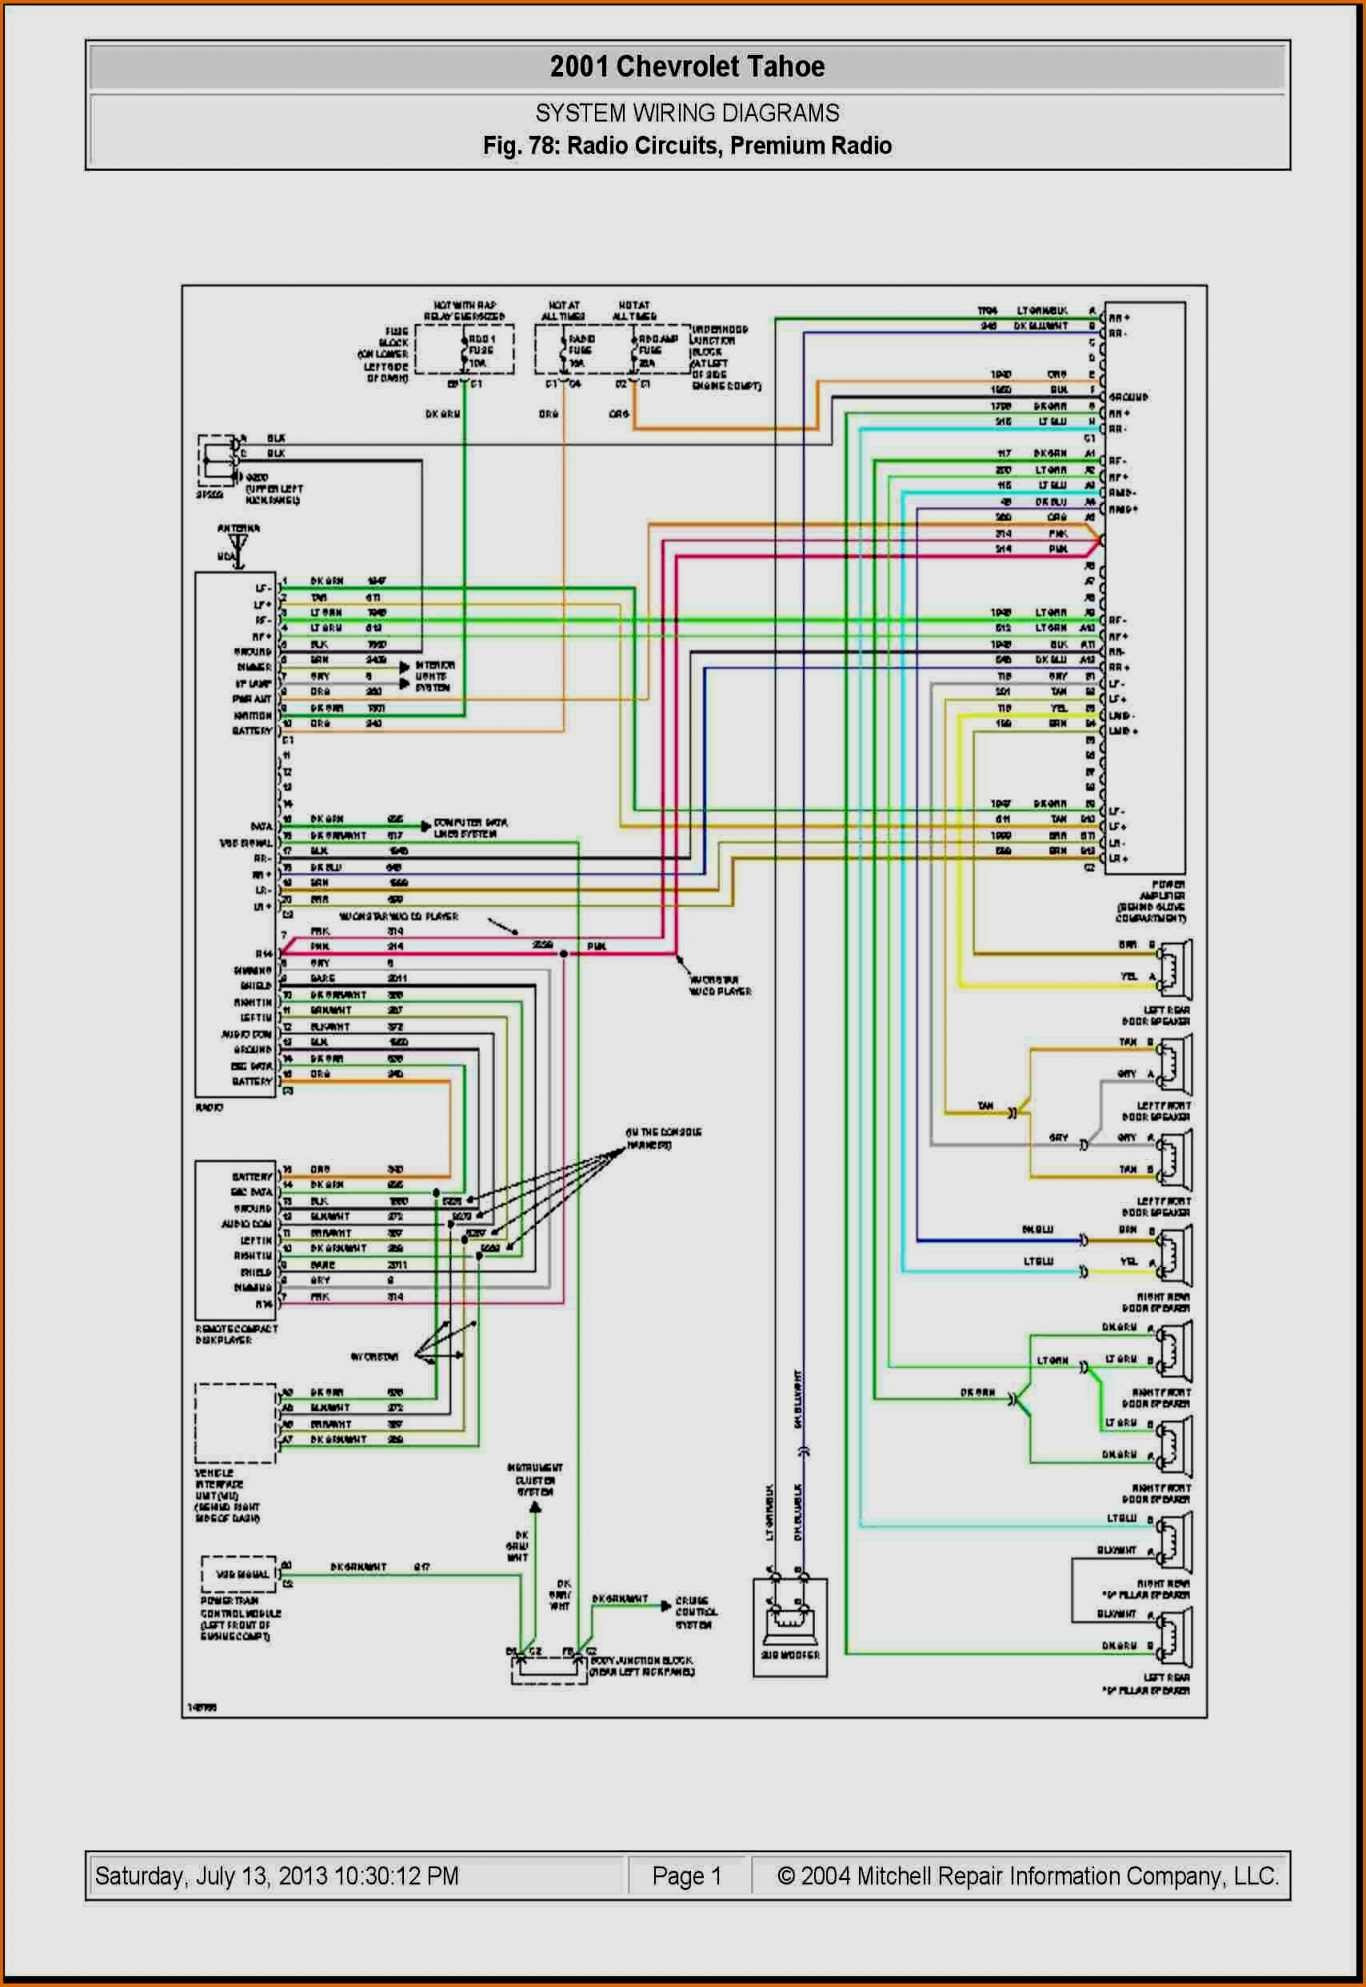 Download 1991 Gmc Radio Diagram Wiring Schematic Full Hd Version Diagram69 Bruxelles Enscene Be